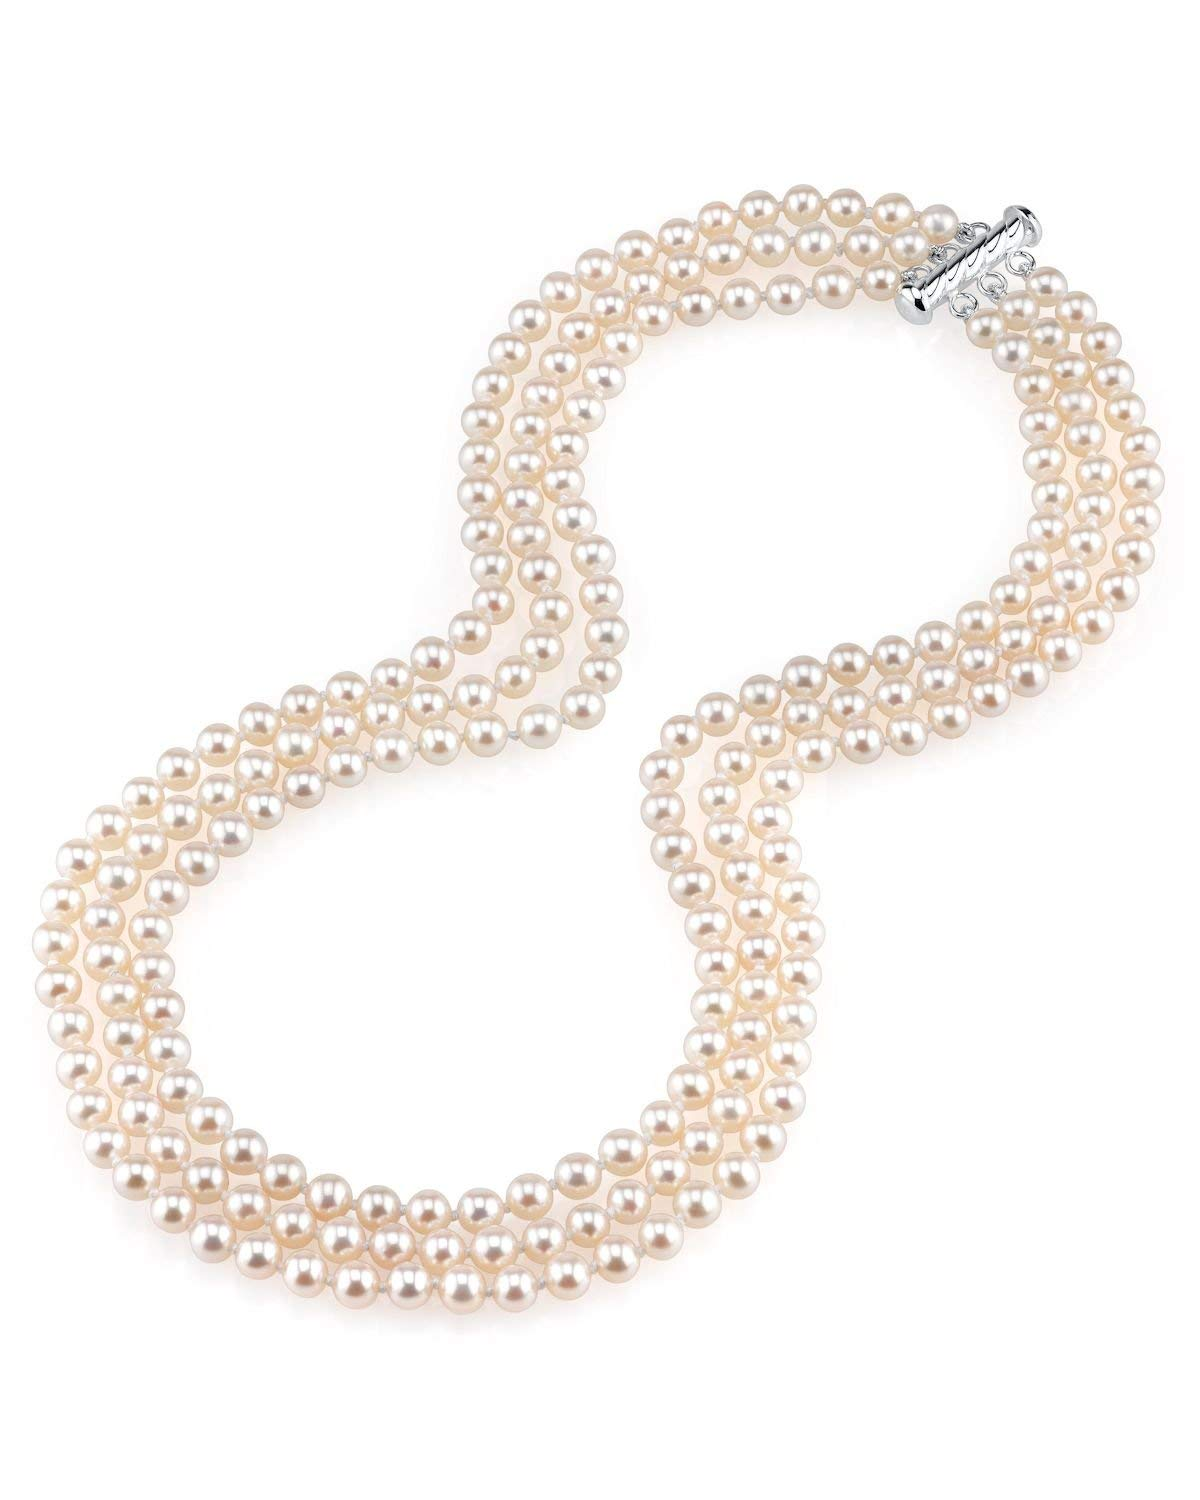 THE PEARL SOURCE 5.0-5.5mm AAAA Quality Triple Strand White Freshwater Cultured Pearl Necklace for Women in 16-17-18'' Princess Length by The Pearl Source